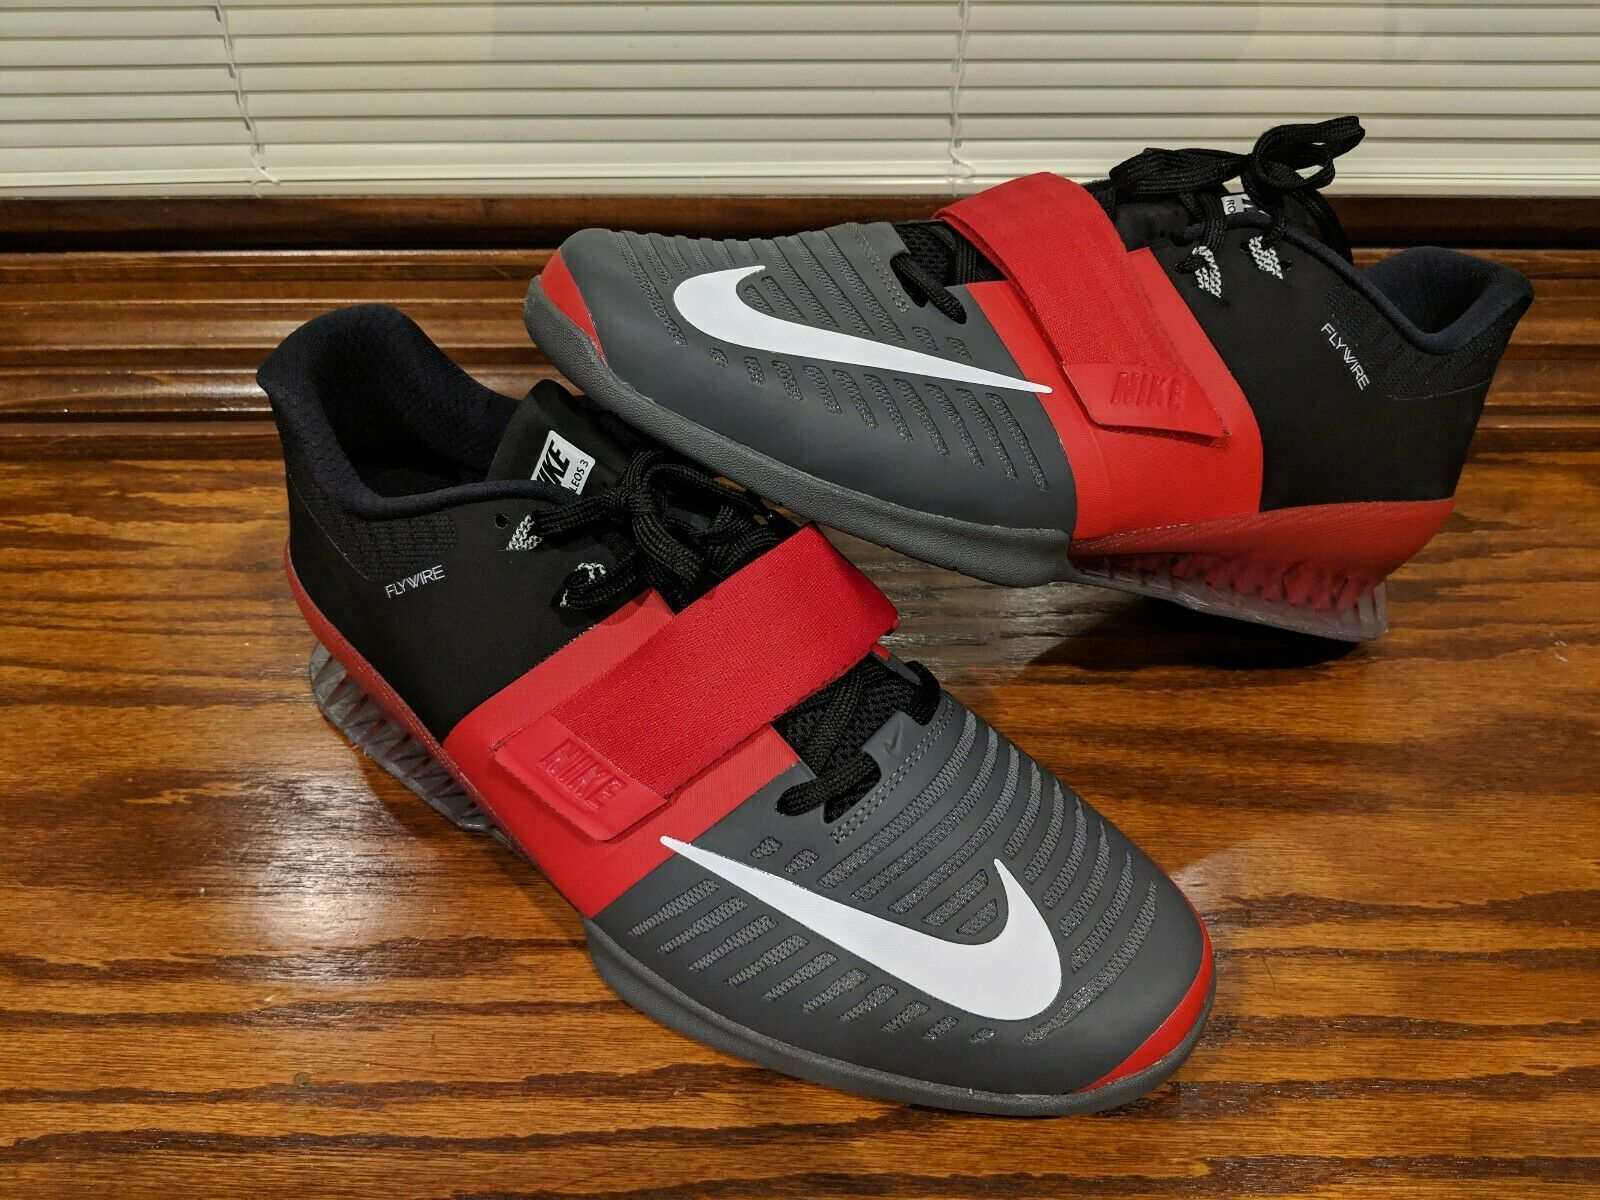 Nike Romaleos 3 Mens Weightlifting CrossFit shoes Red Grey Size 14 852933-600